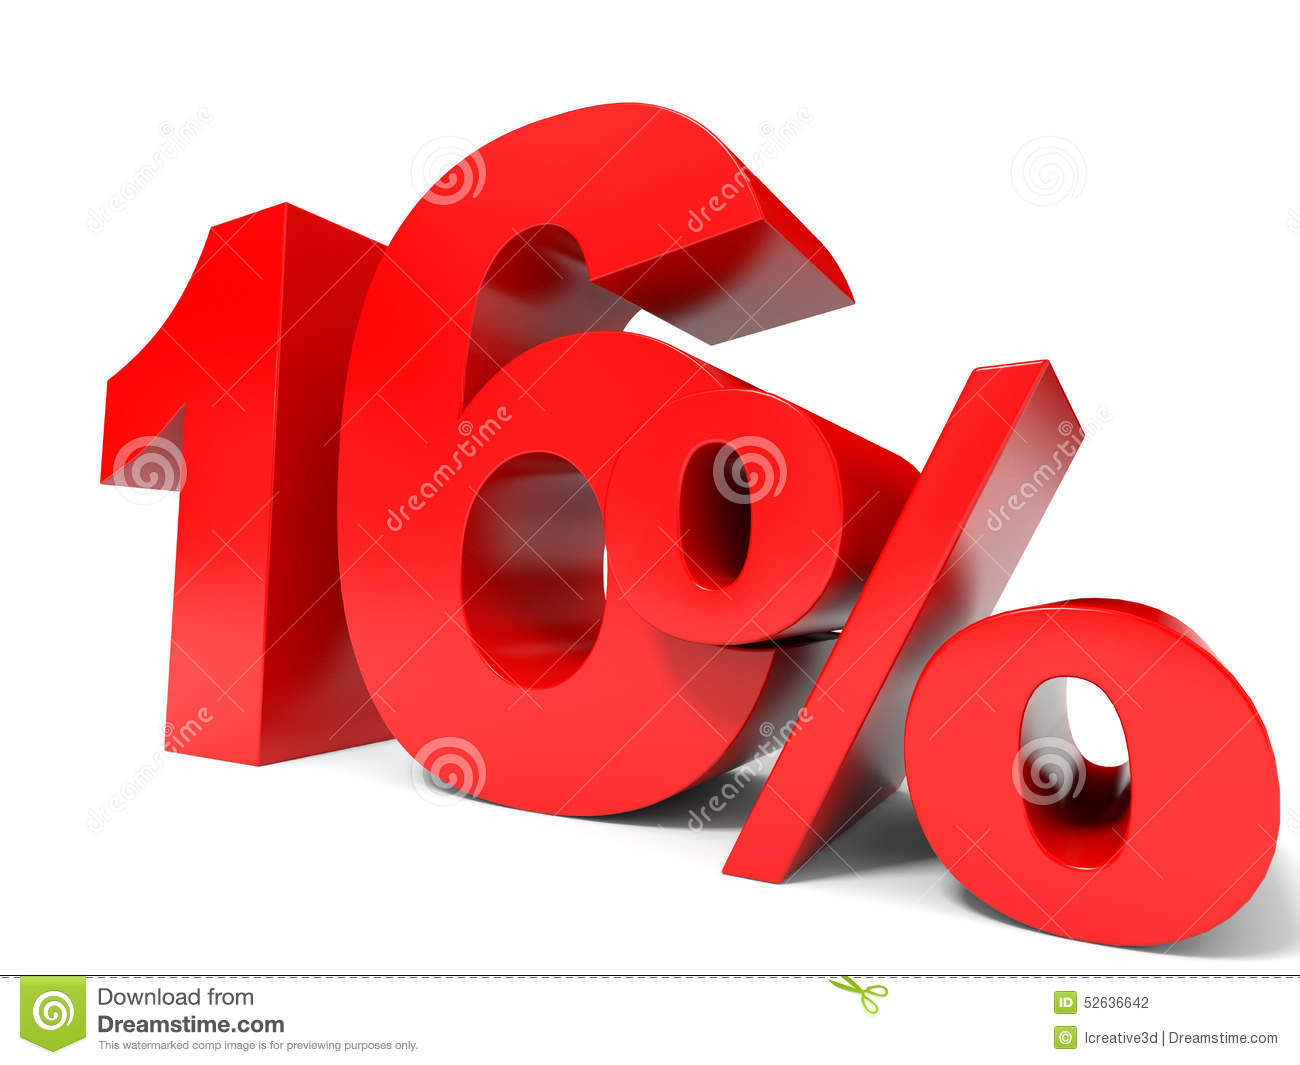 how to get the number from a percentage